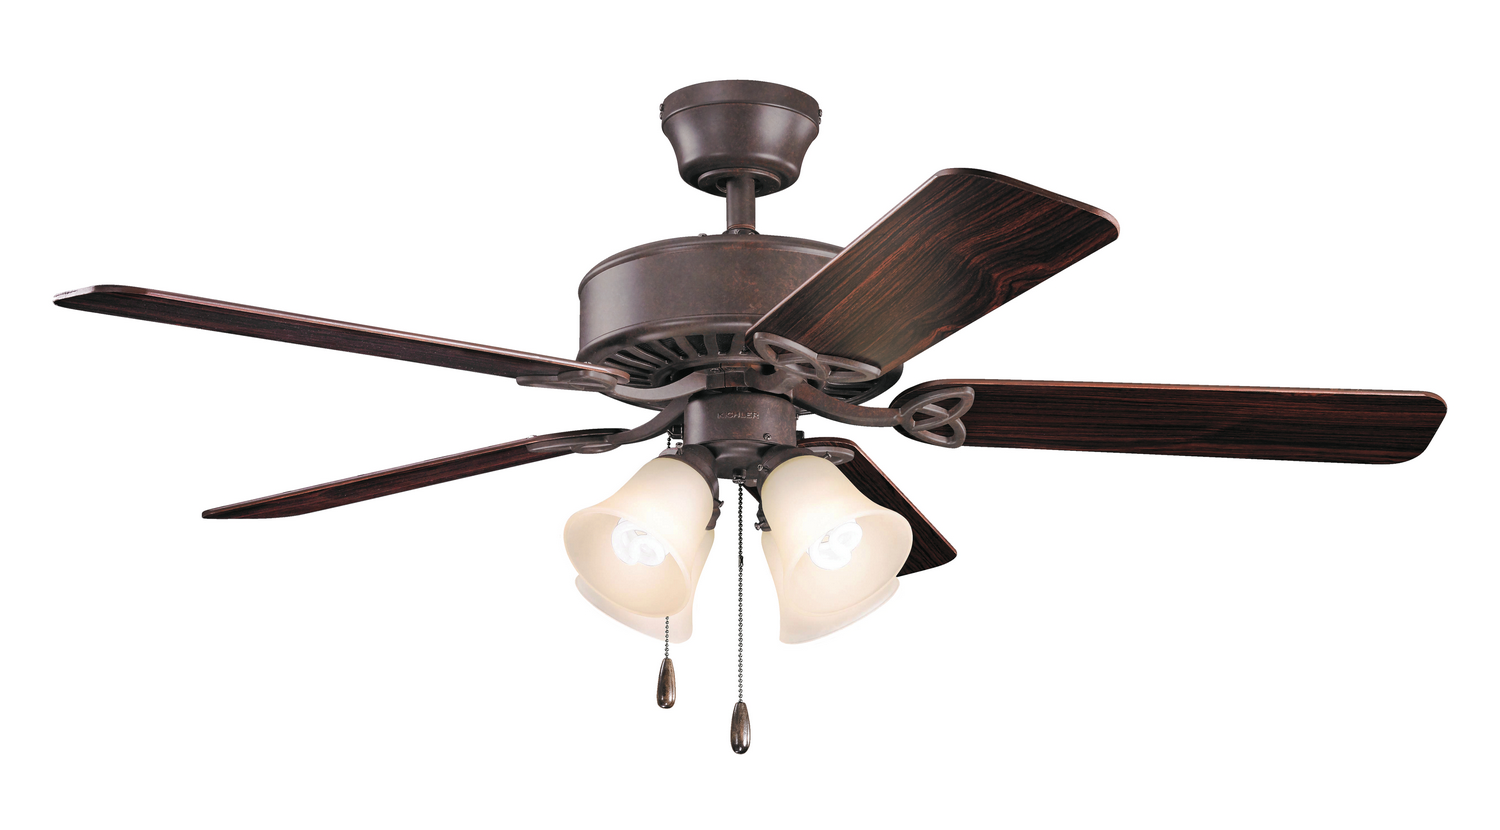 50 inchCeiling Fan from the Renew Premier collection by Kichler 339240TZ